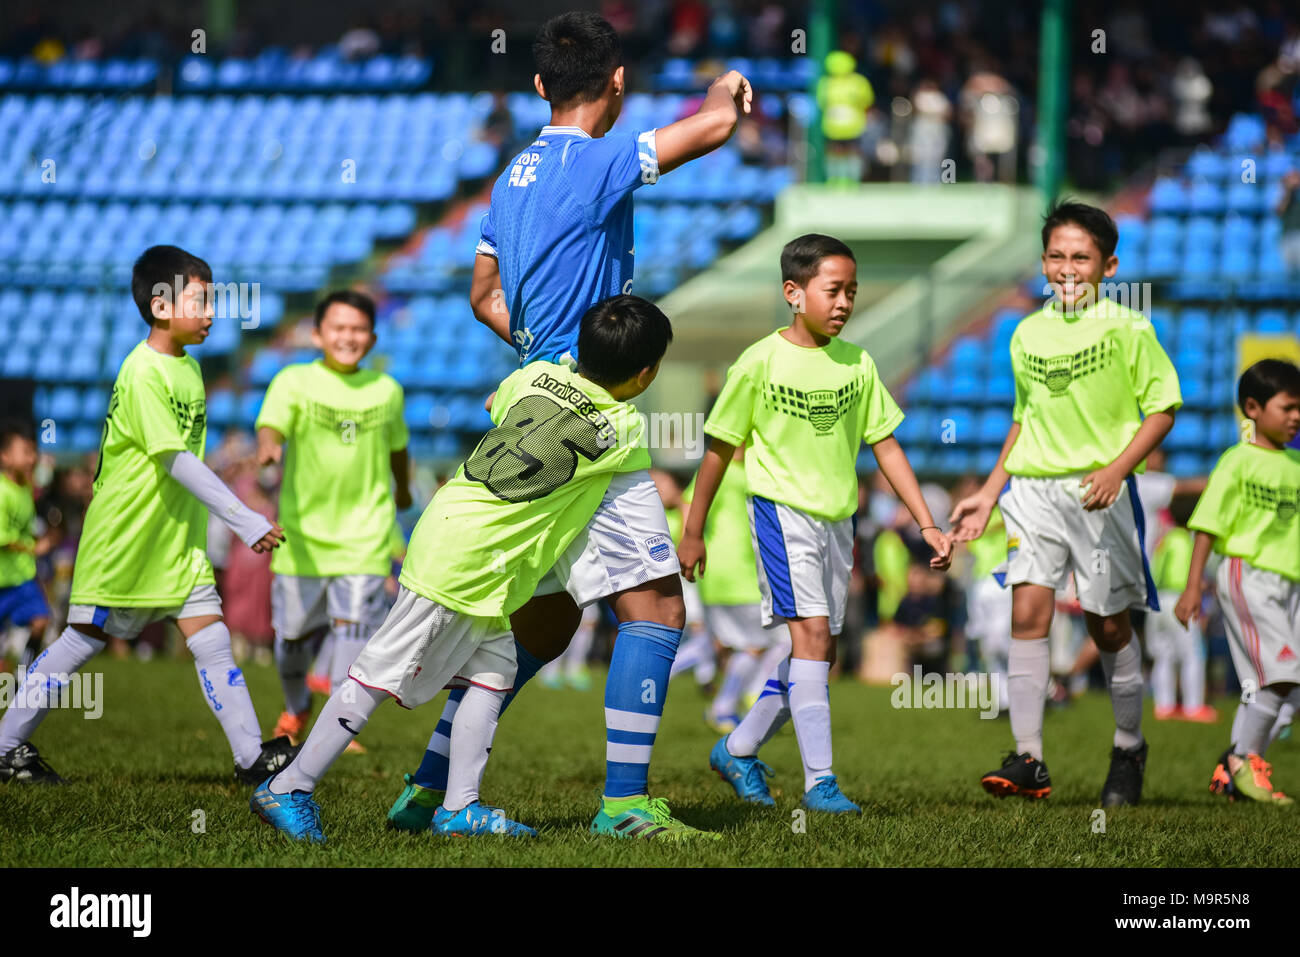 A child player doing a 'man to man marking' during an exhibition match to celebrate Persib FC's 85th anniversary in Bandung, Indonesia. - Stock Image